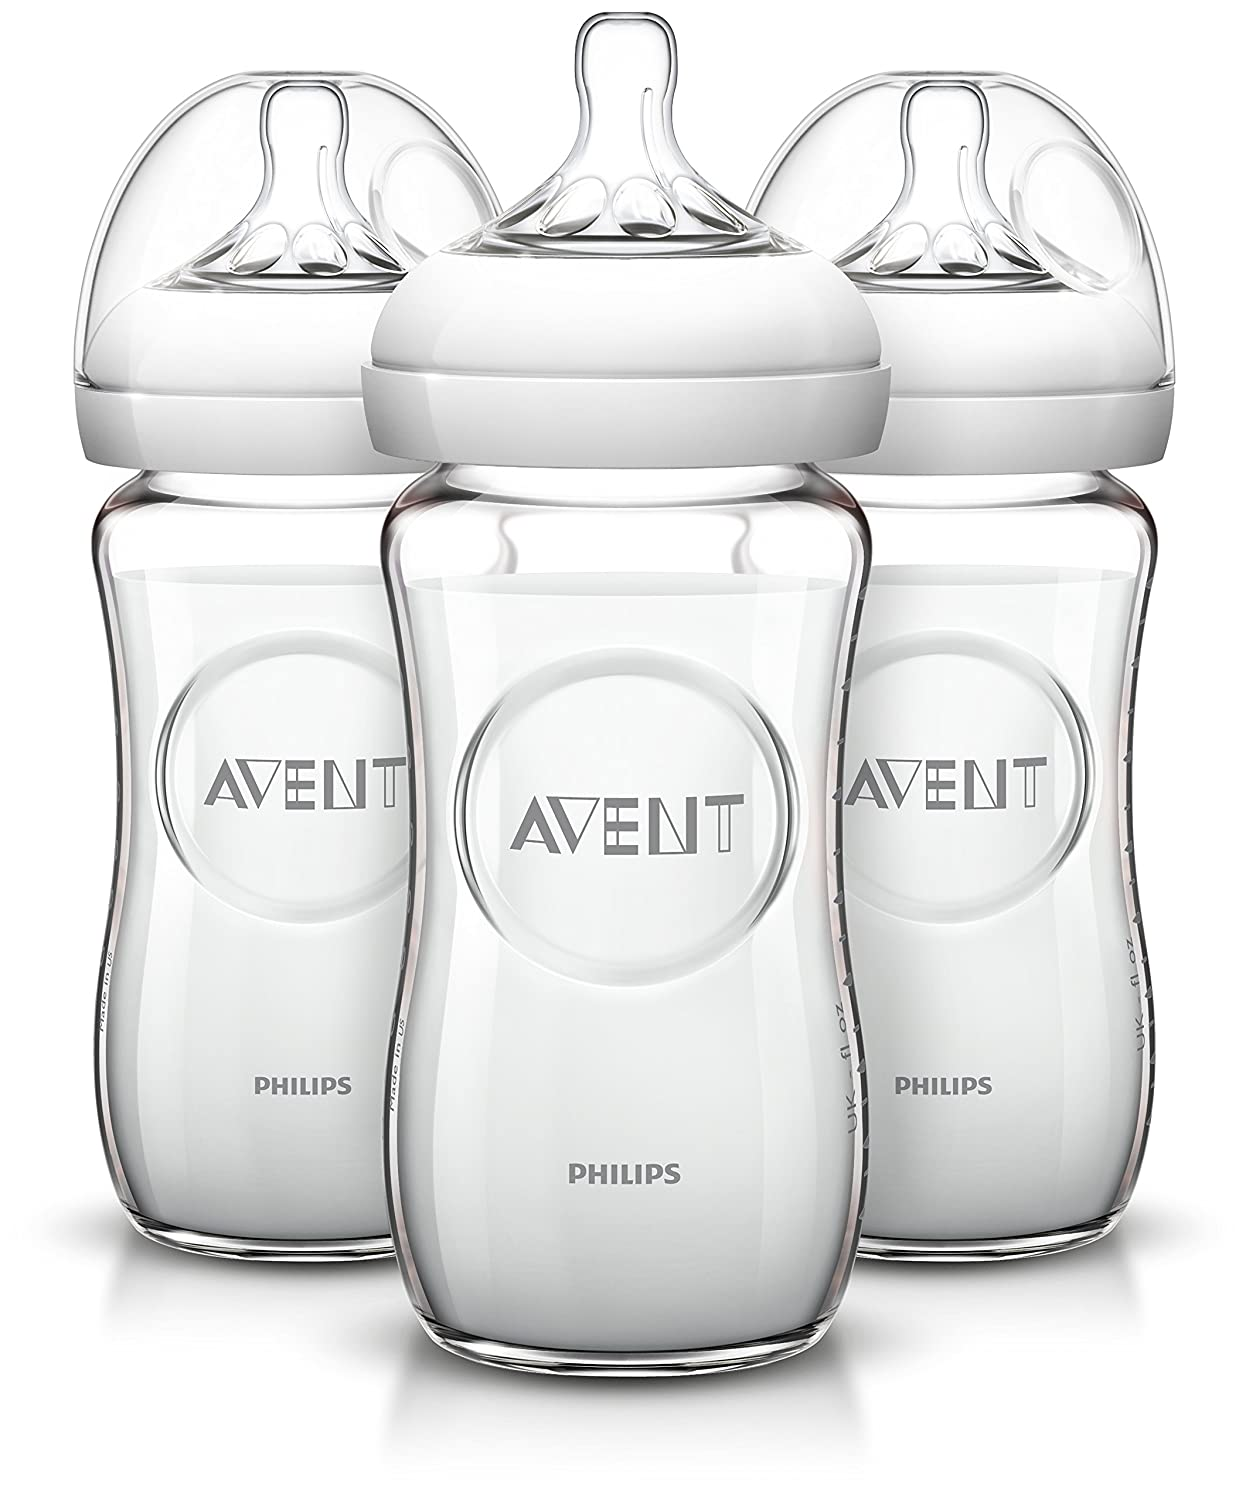 Top 9 Best Glass Baby Bottles For Infants (2020 Reviews) 1